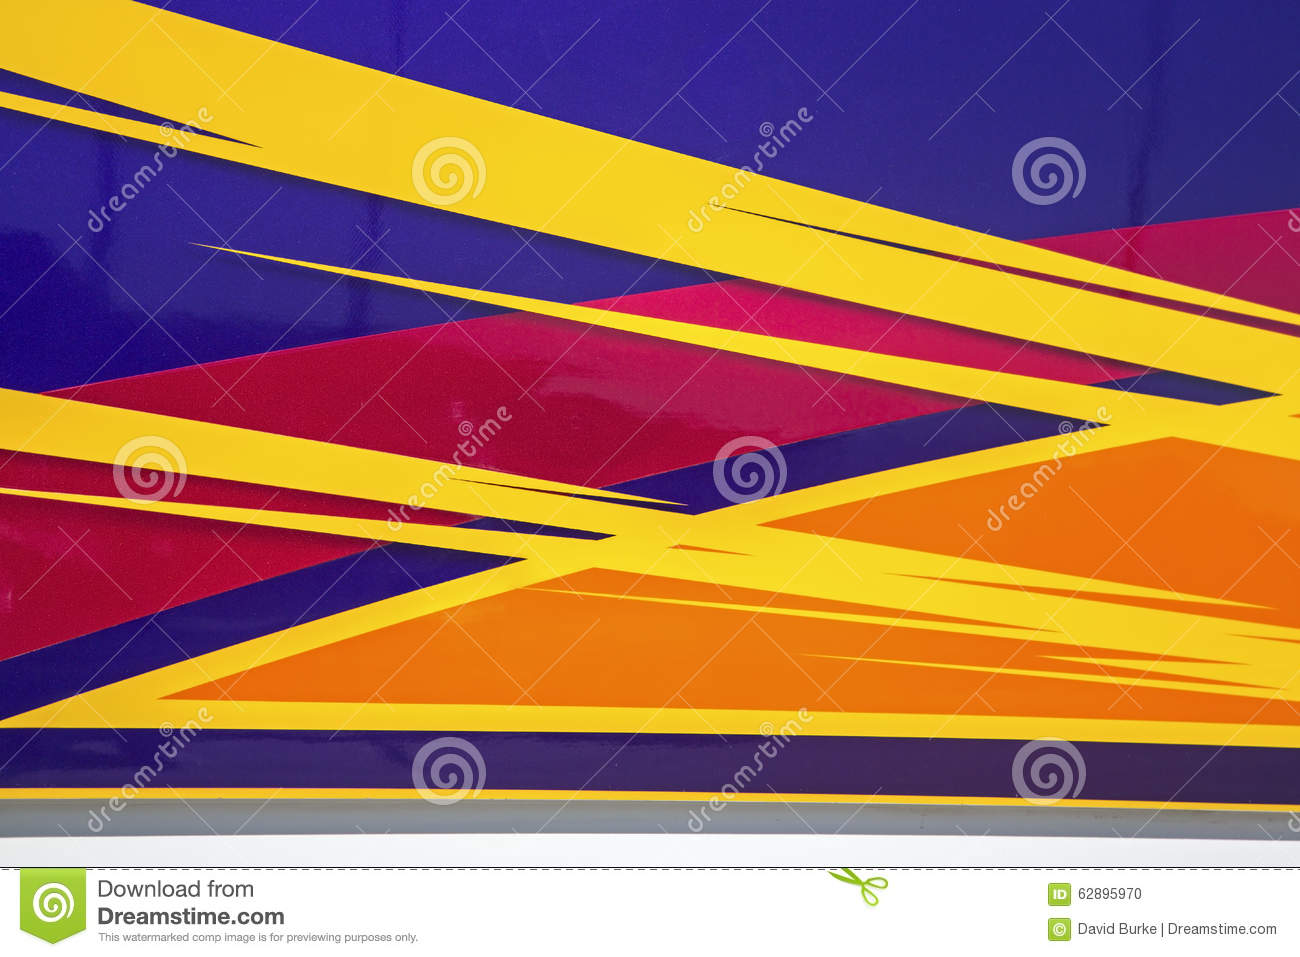 Racing Stripes Streaks Colorful Background Race Speed Stripe Bright Art Painting Penvector